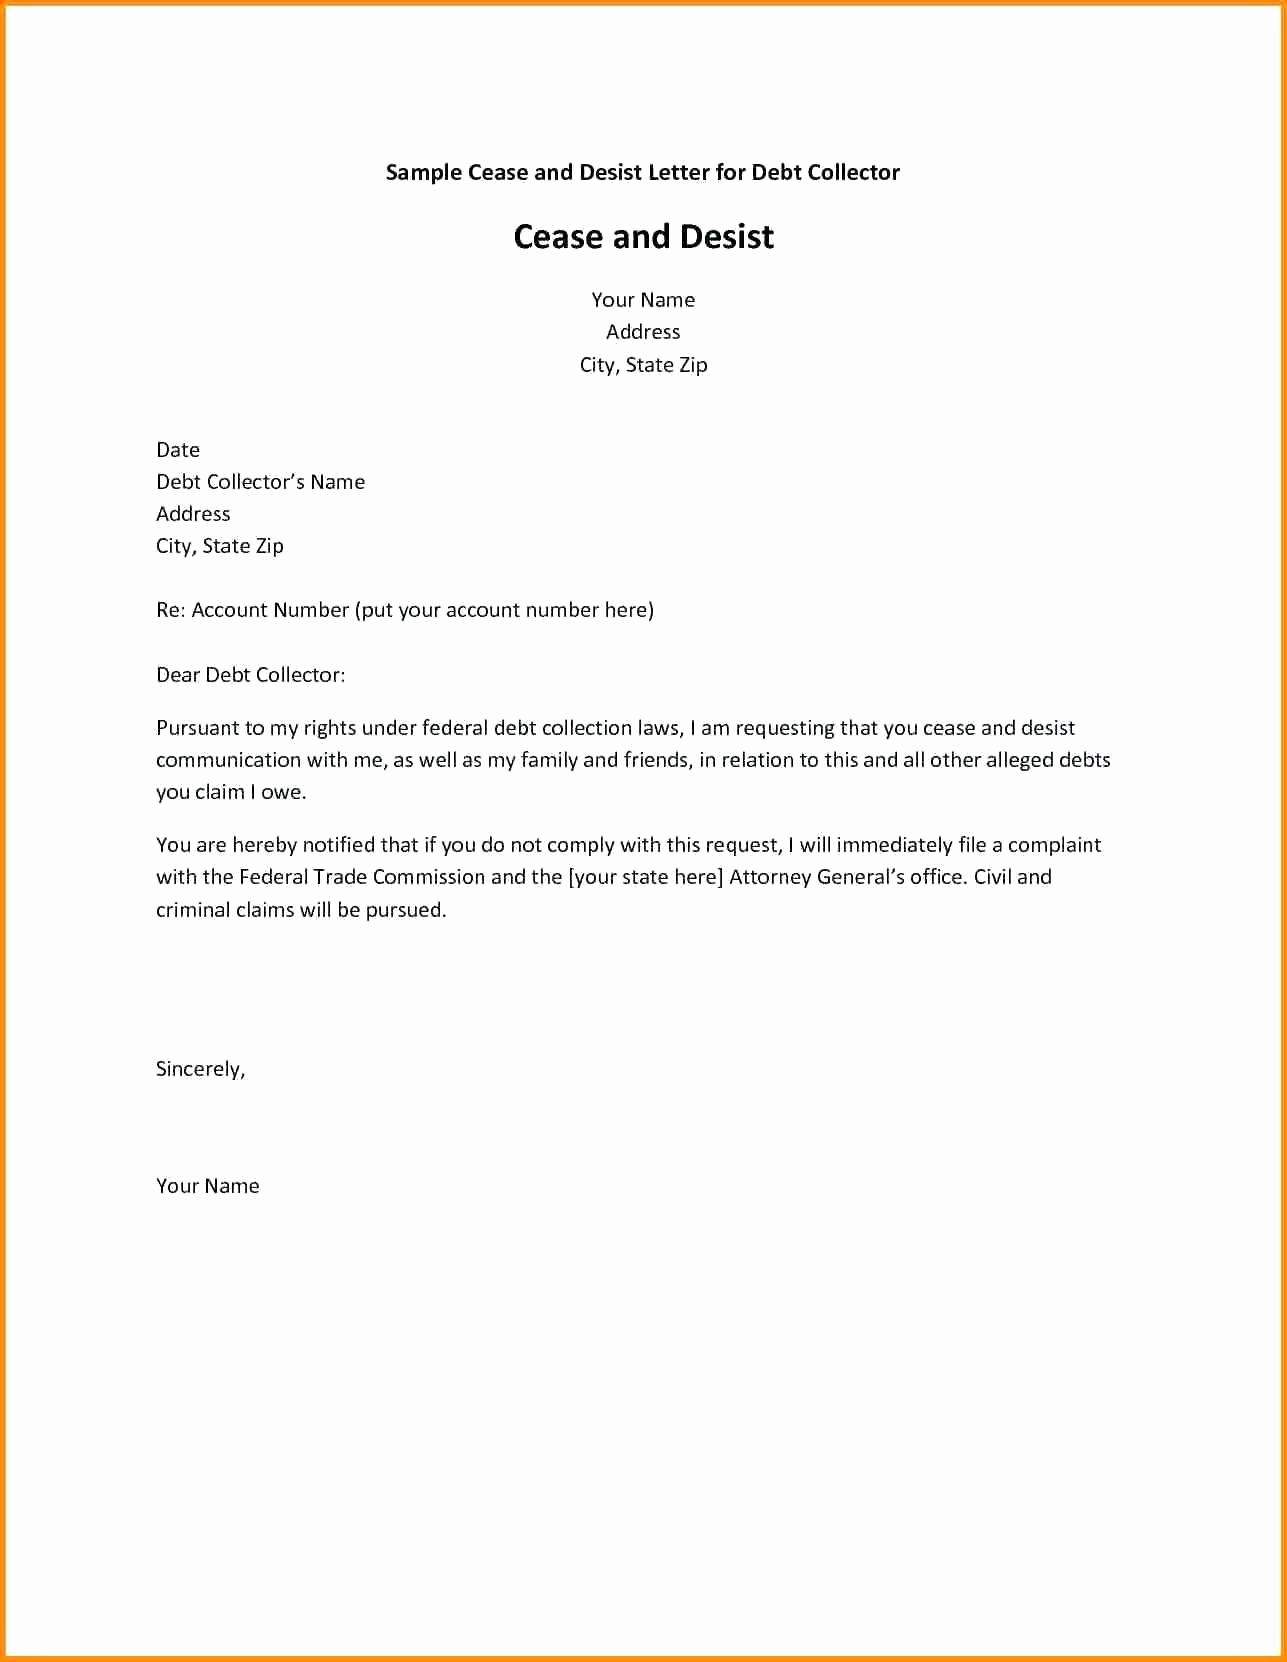 Cease and Desist Letter Template Business Name - Sample Cease and Desist Letter to former Employee Awesome Cease and